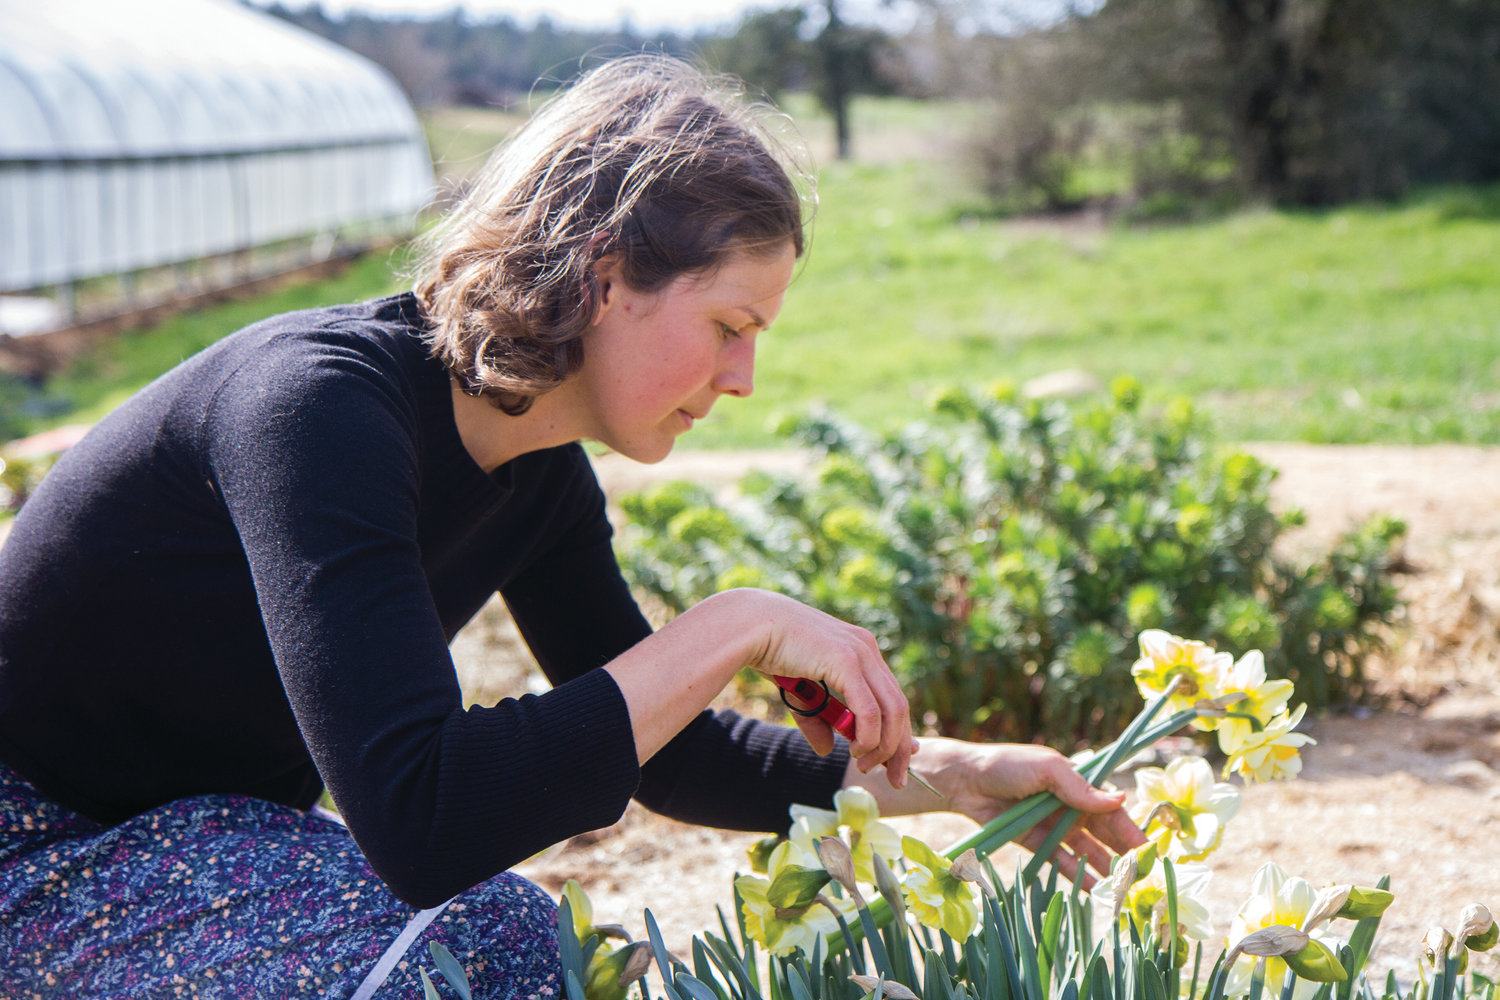 Allred harvests daffodils to make a bouquet. She grows her flowers in beds and does not use herbicides or pesticides.